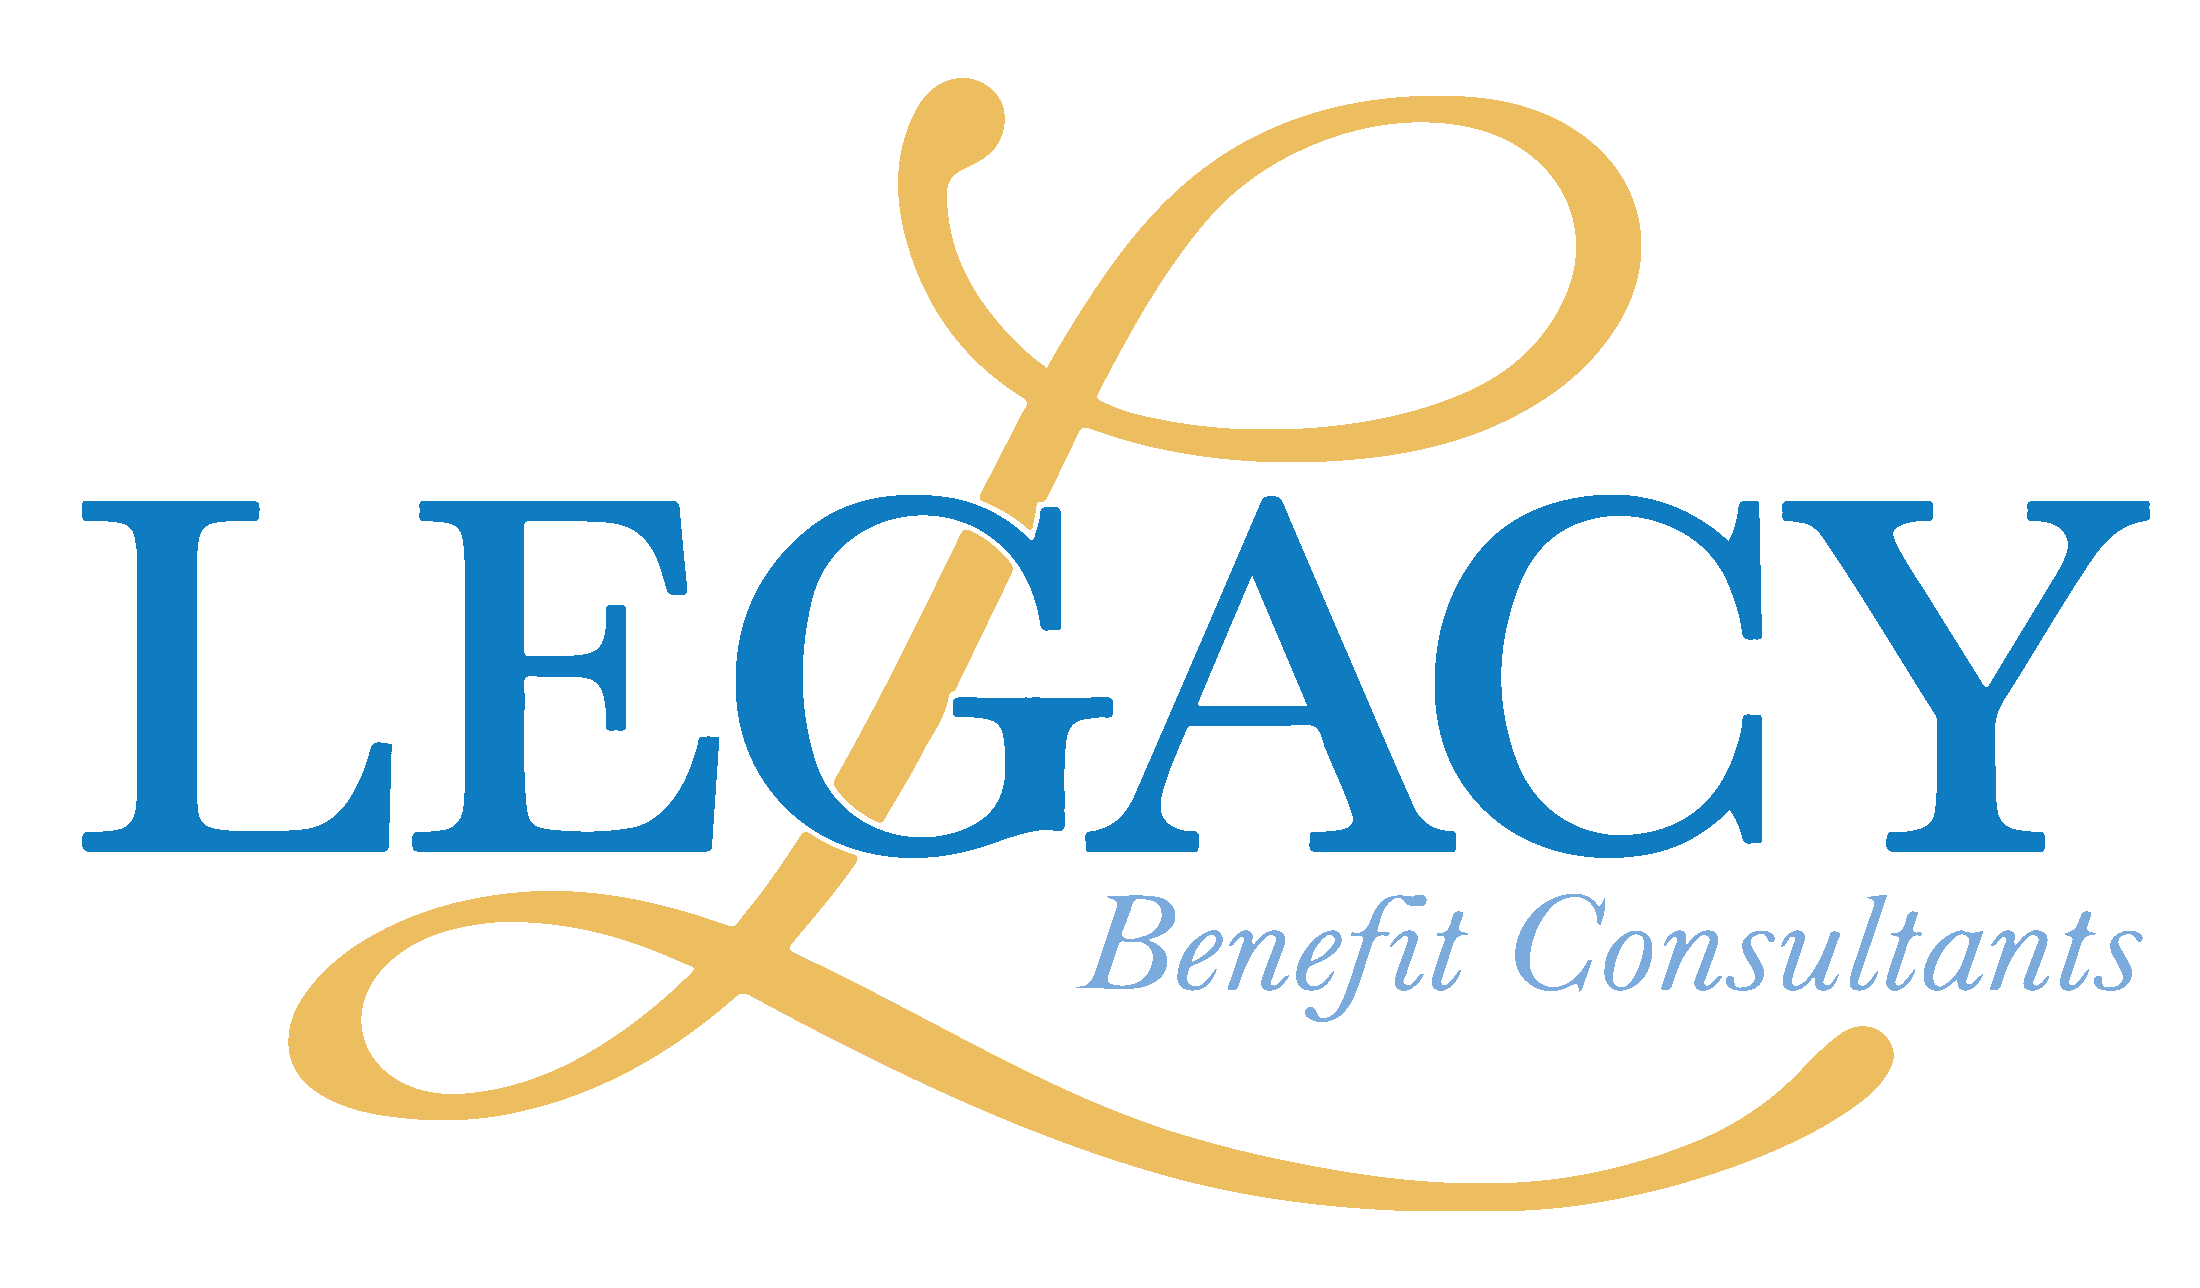 Legacy Benefits Consultants - Graphic design client of Danielle Alexander Design in Waconia, MN